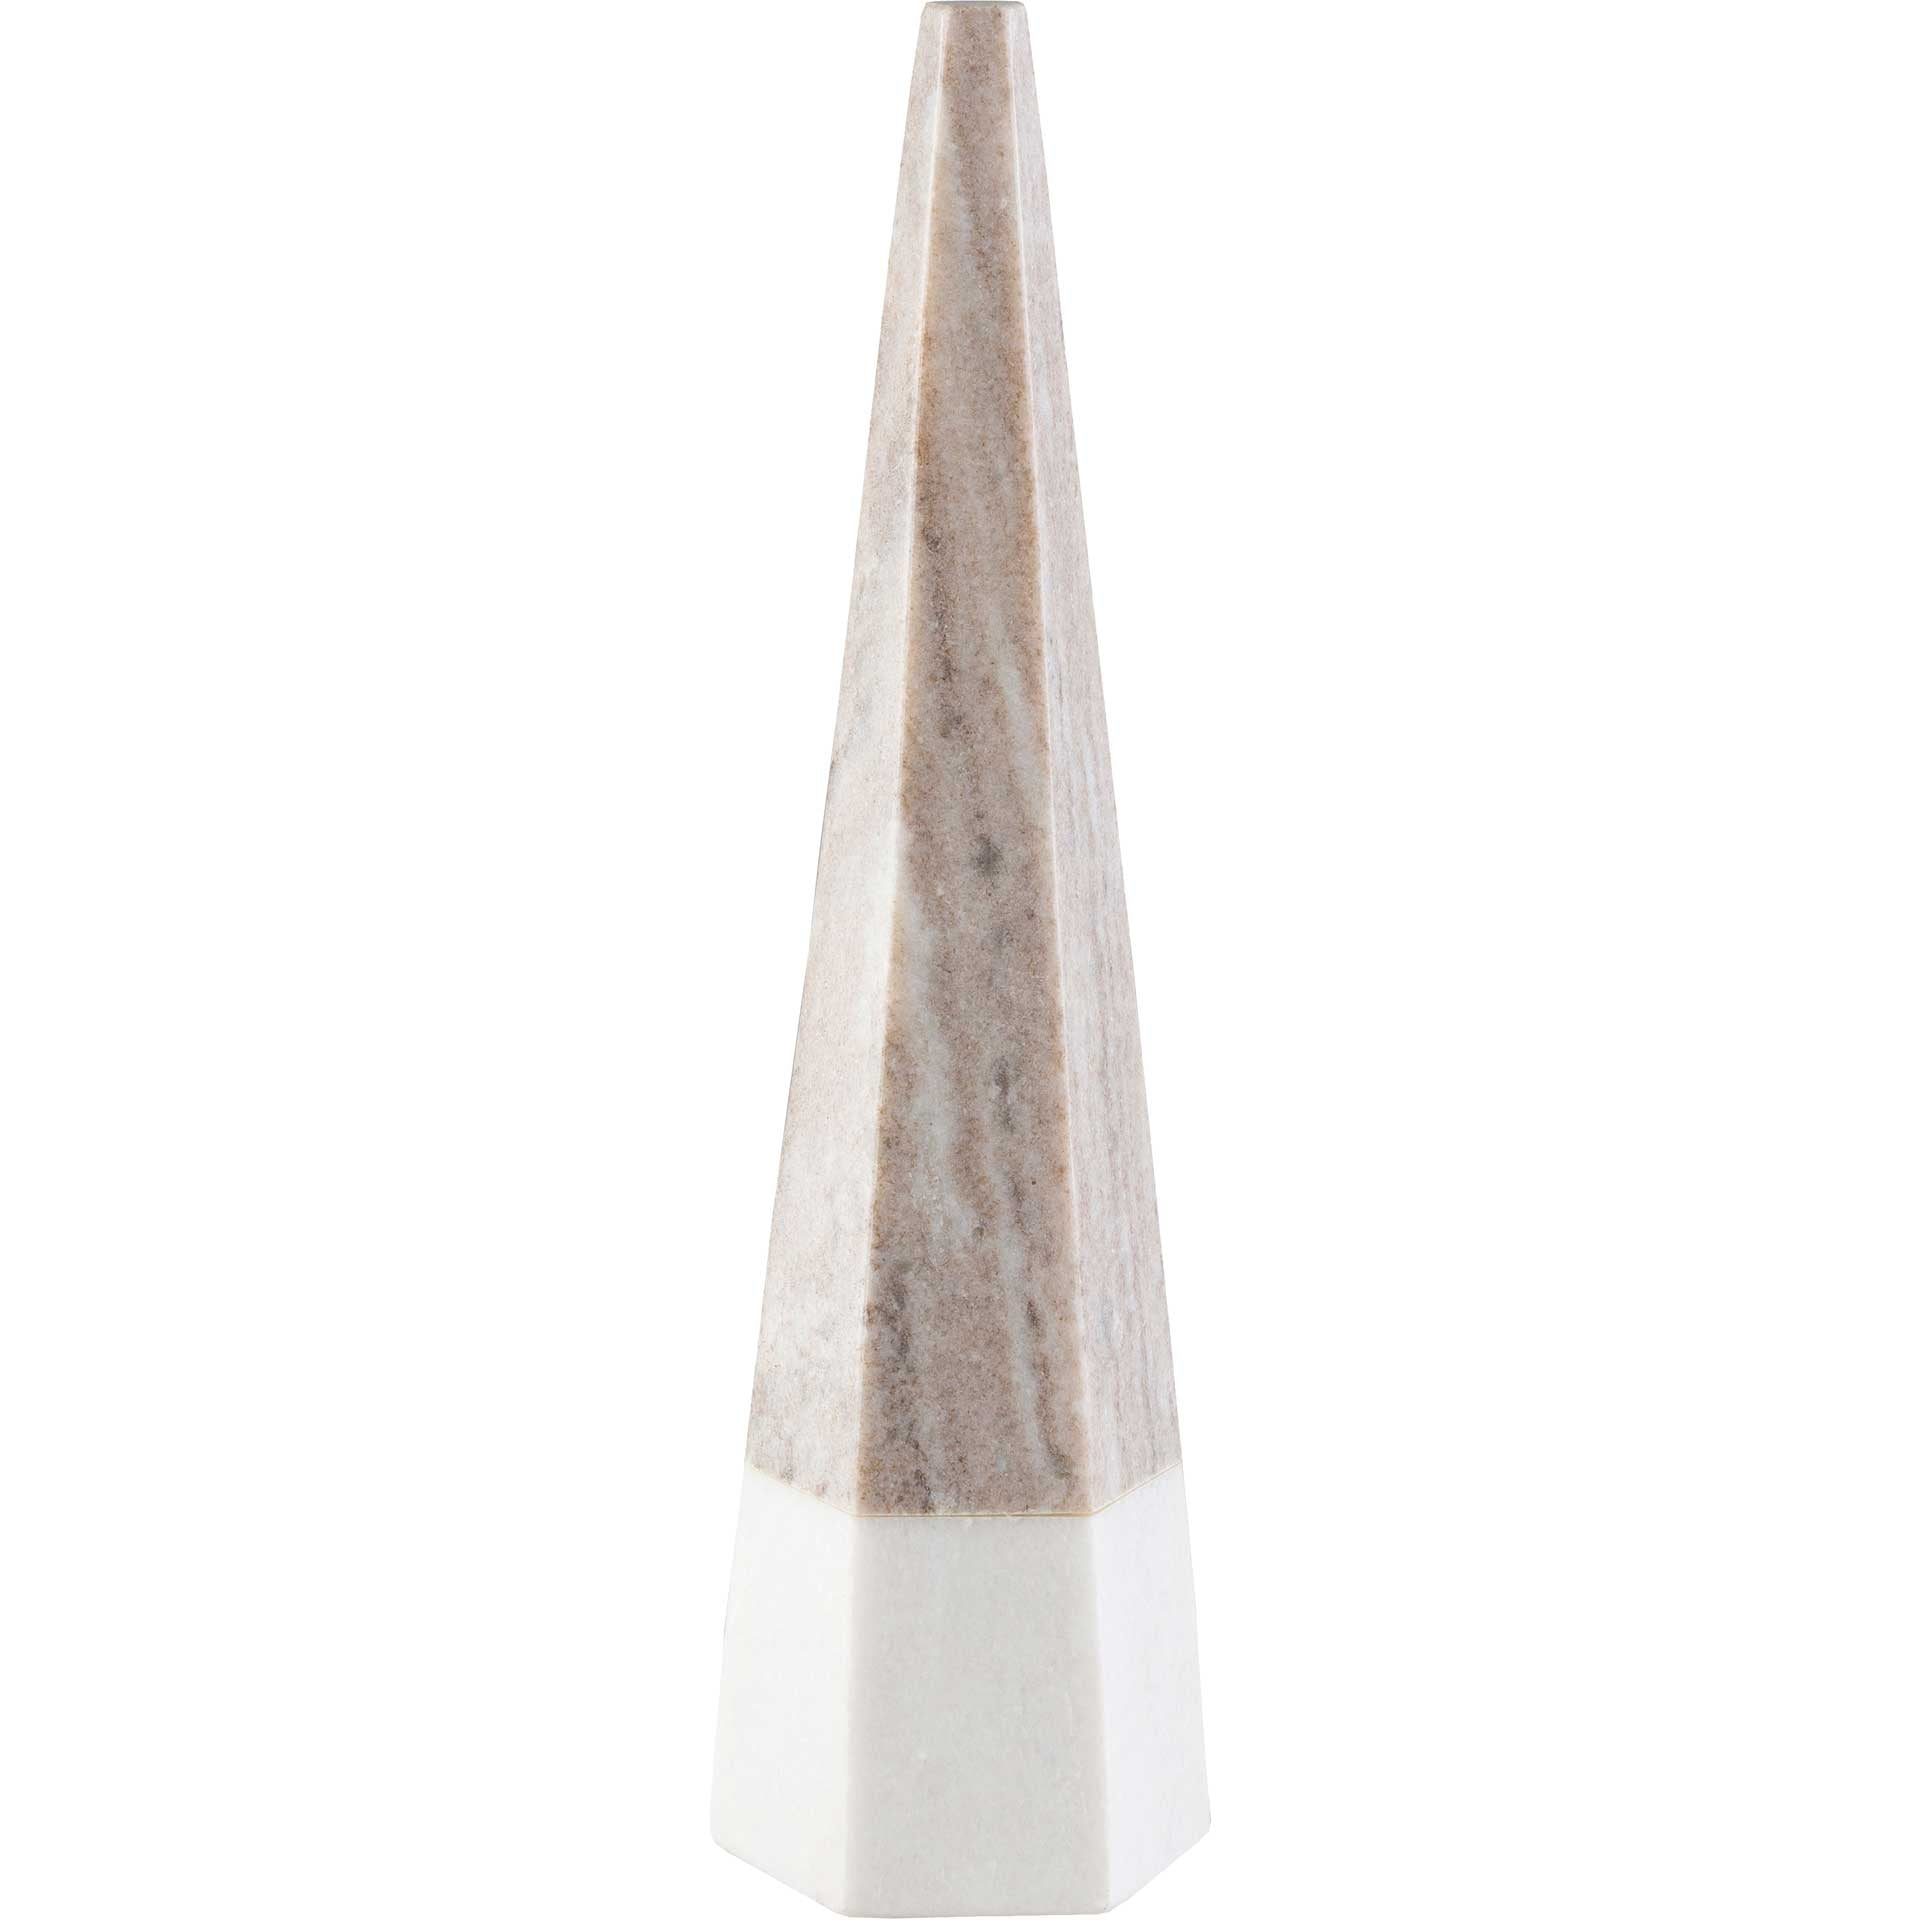 Pyramidal Decorative Accent White/Brown